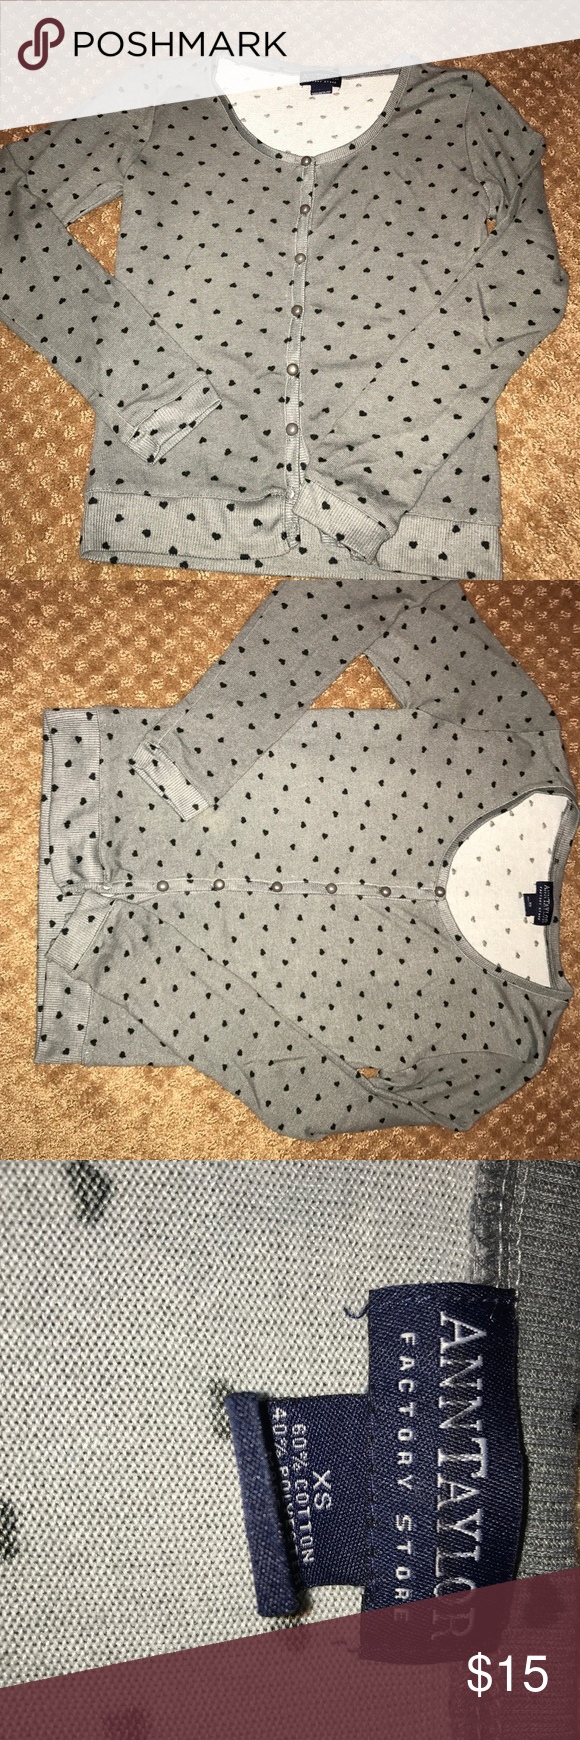 Ann Taylor factory cardigan Super cute and in great condition! It's grey with a tiny black heart pattern. Ann Taylor Factory Sweaters Cardigans